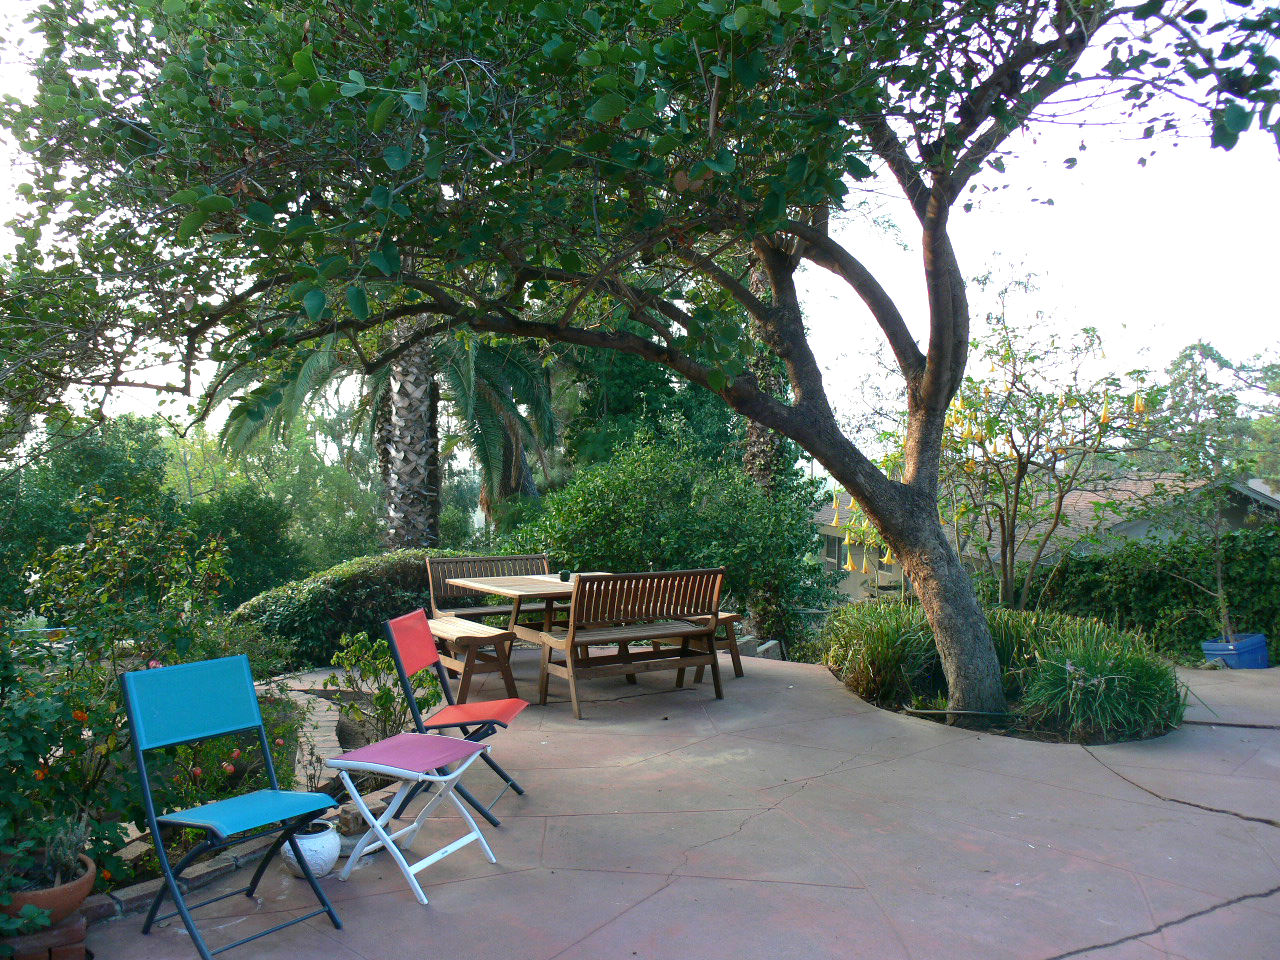 Upper level entertaining area with shade tree and view.